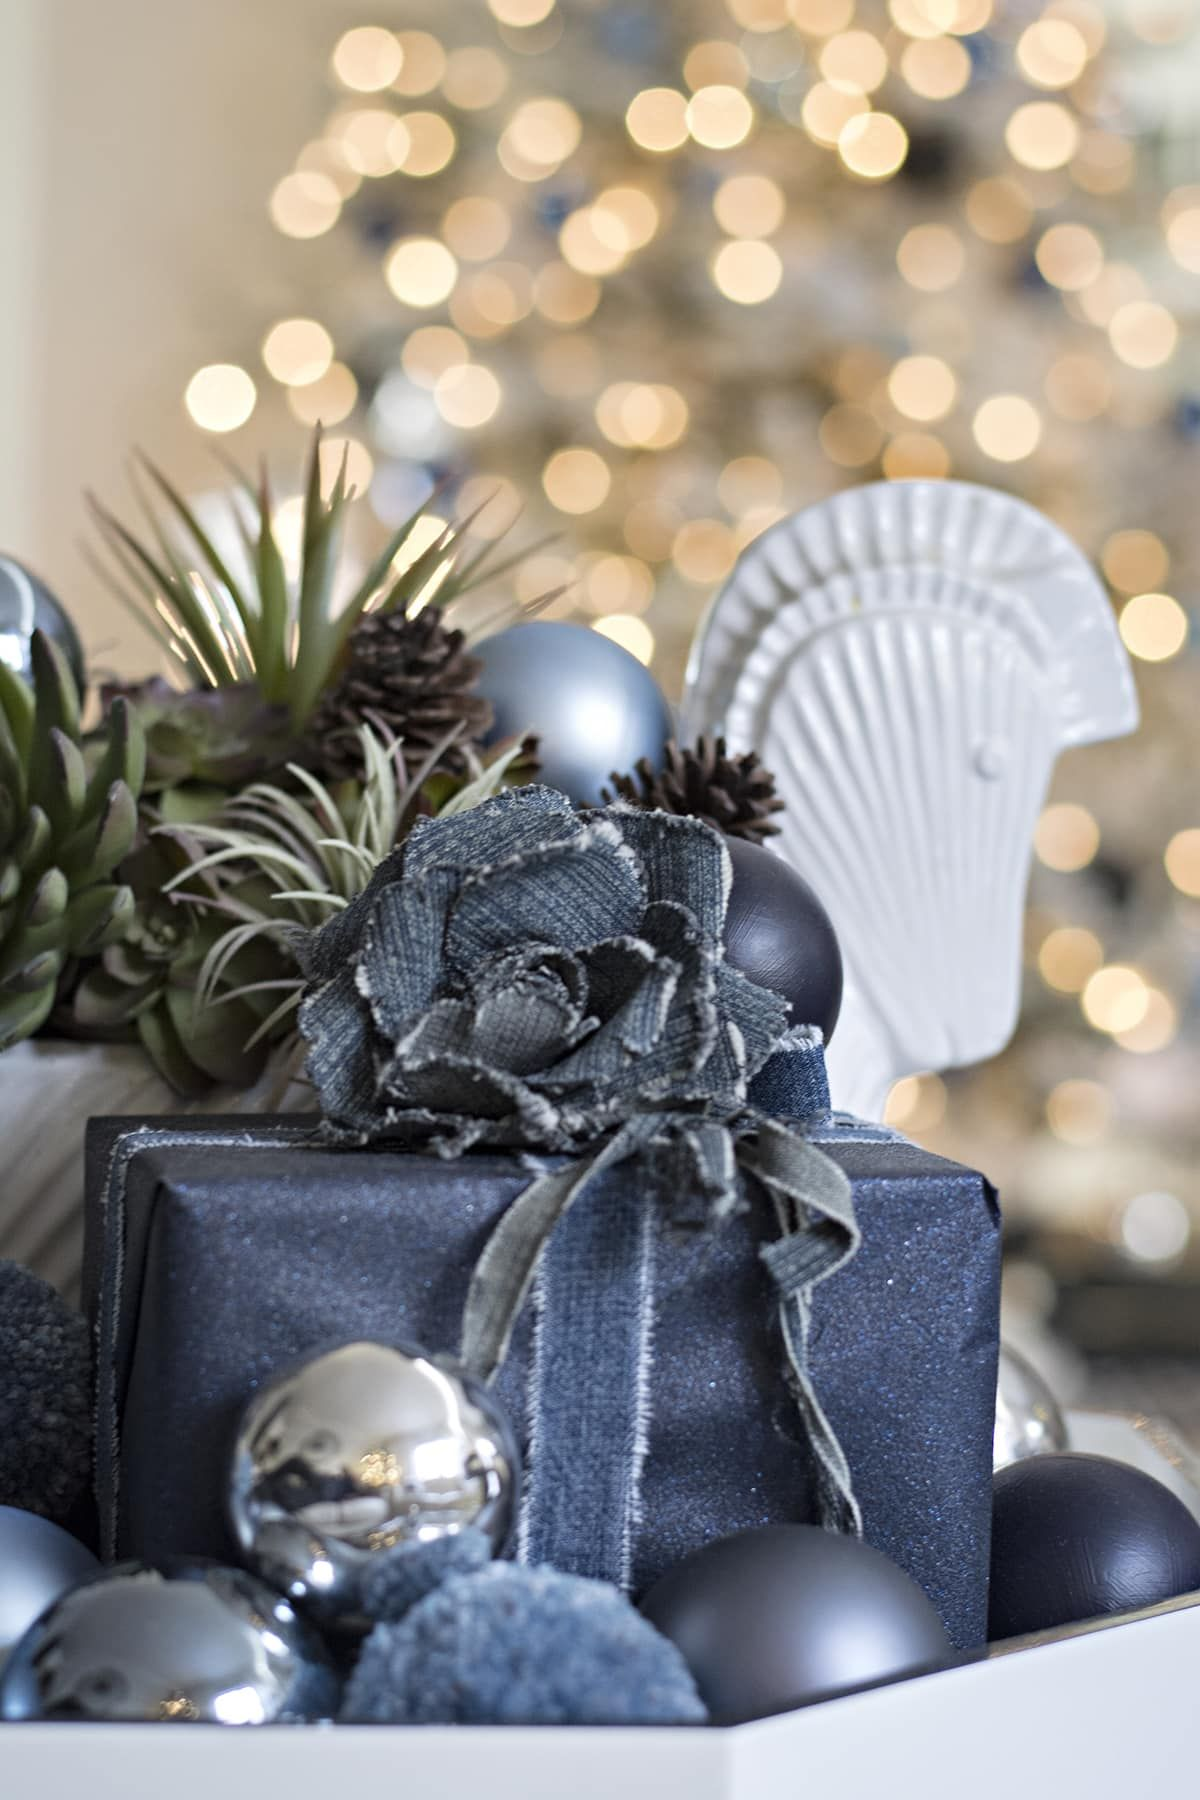 Denim blue and white Christmas images